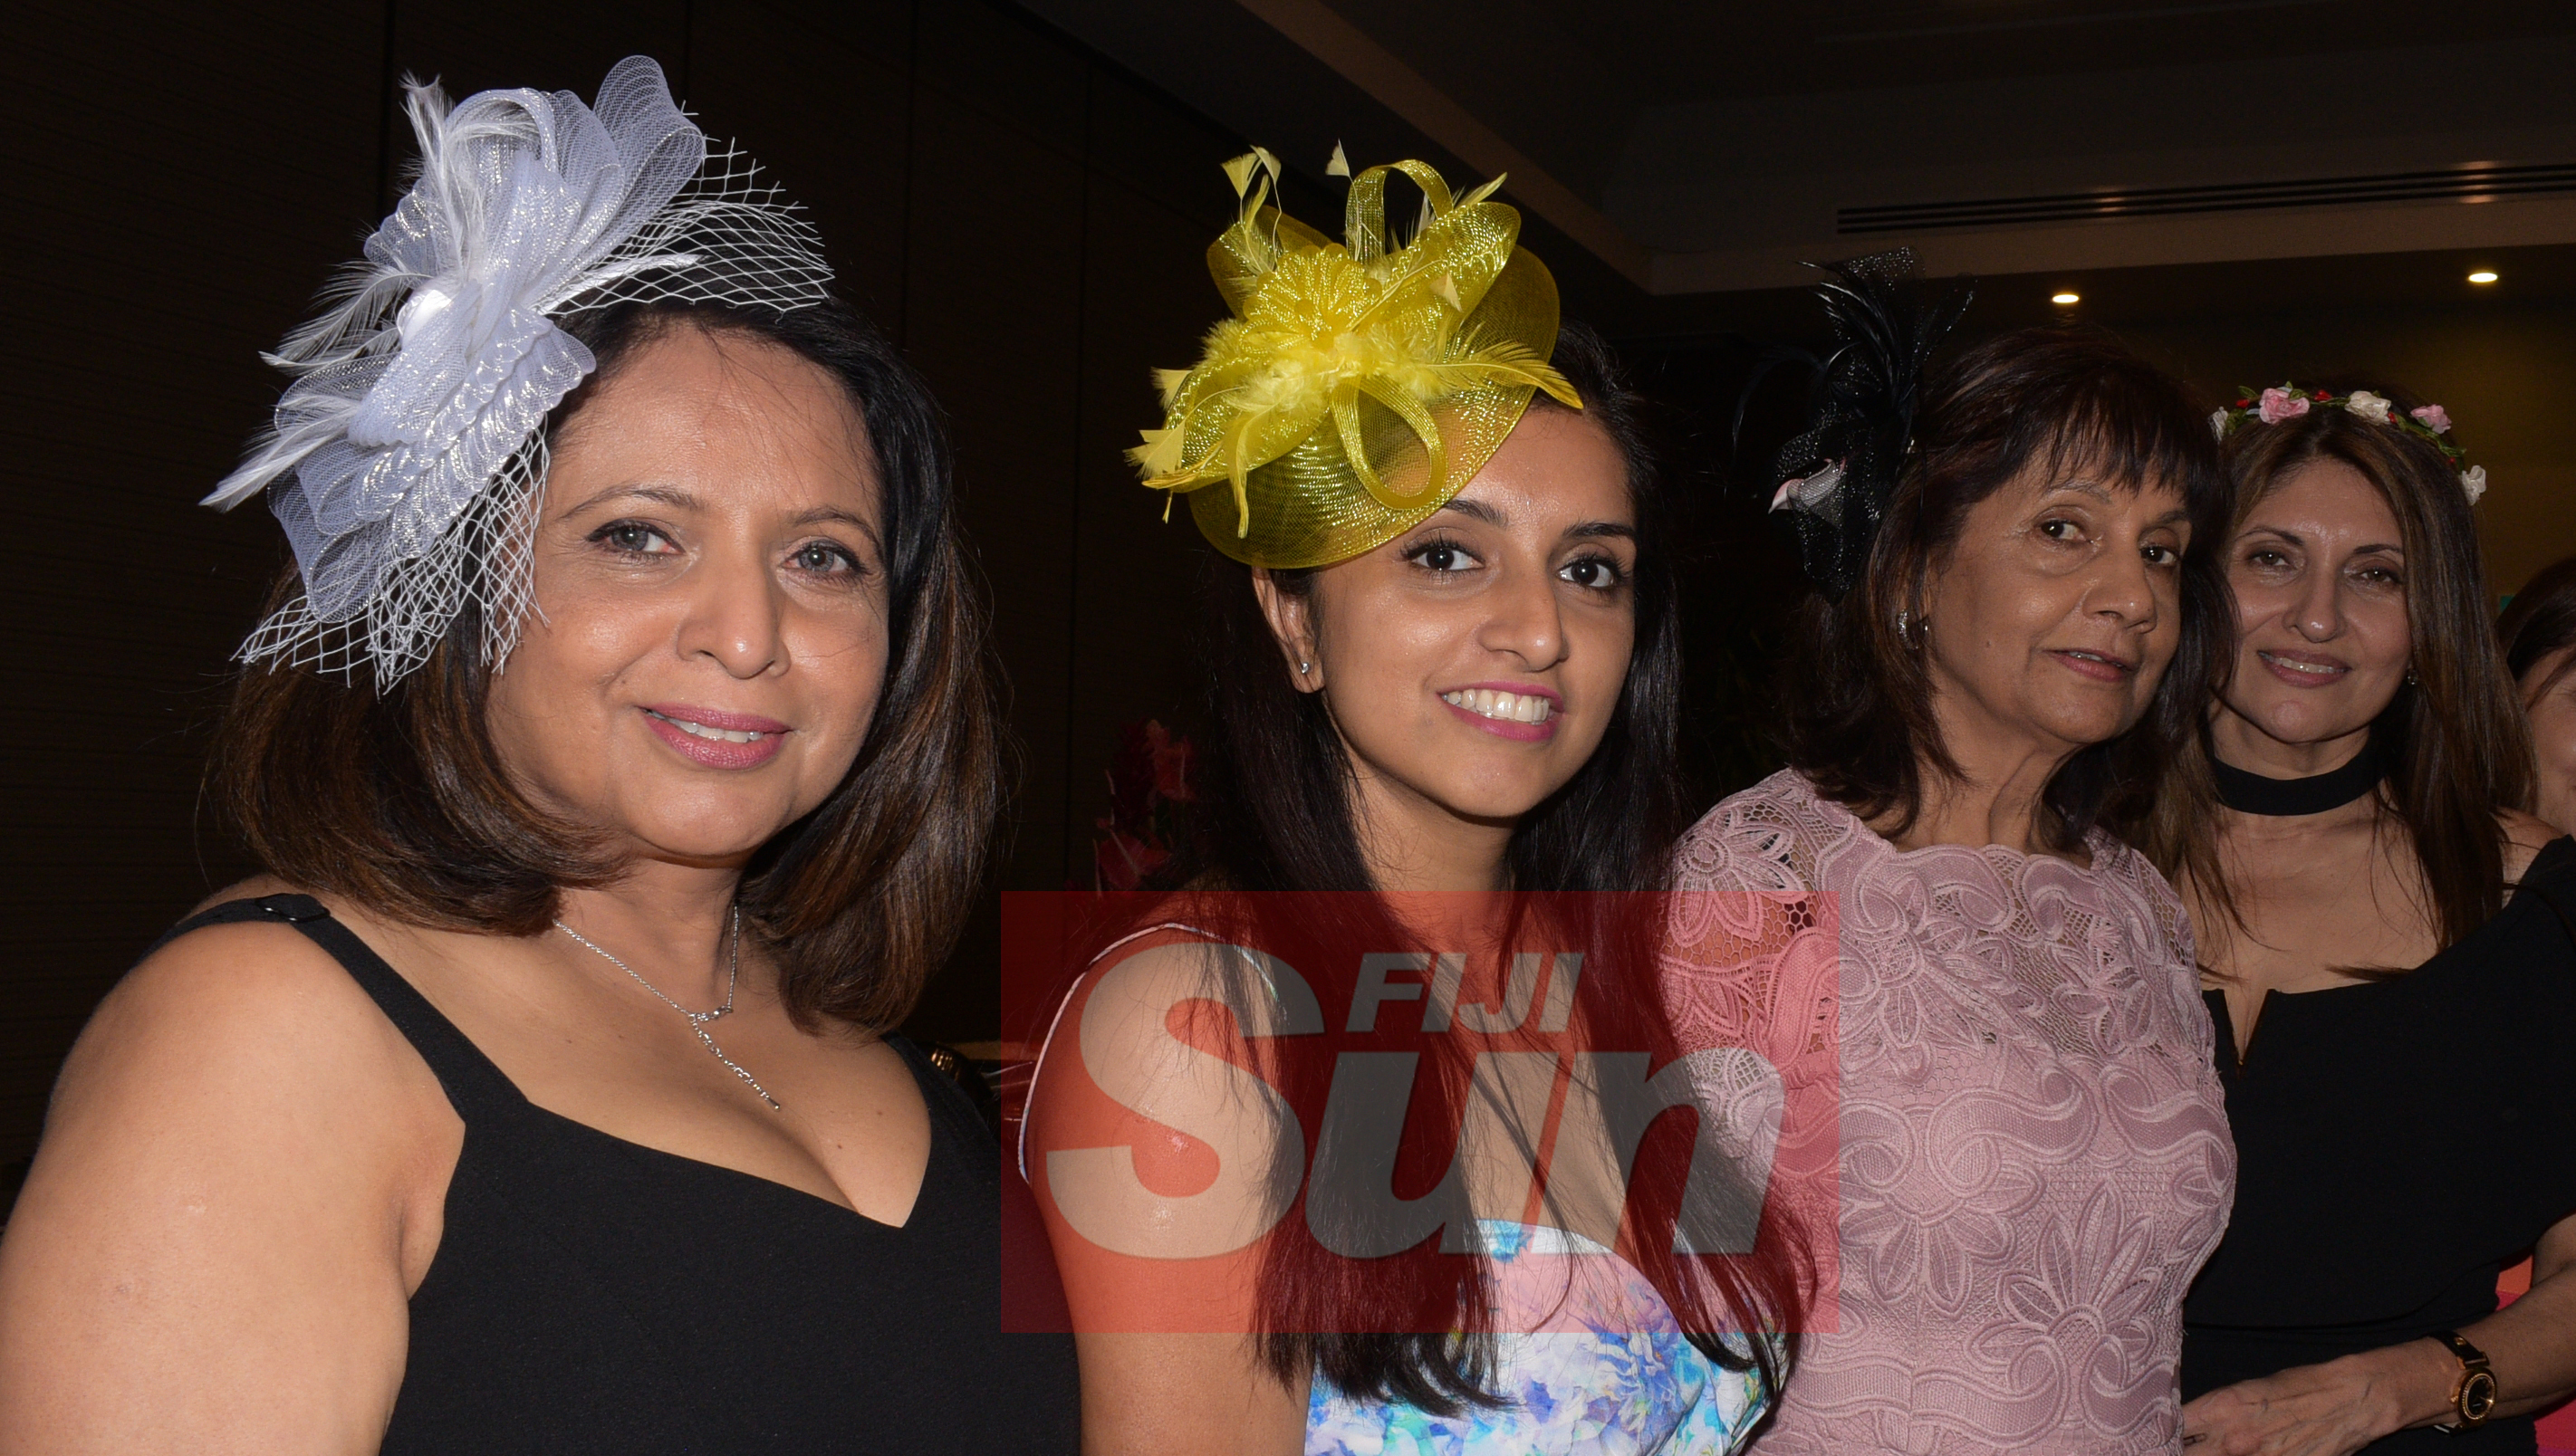 From left-Nita Rathod, Trisha Gokal, Aruna Prasad and Meena Kekishan with their special Melbourne cup hats during Rotary Club Suva organized Melbourne Cup race event at Grand Pacific Hotel on November 5, 2019. Photo: Ronald Kumar.